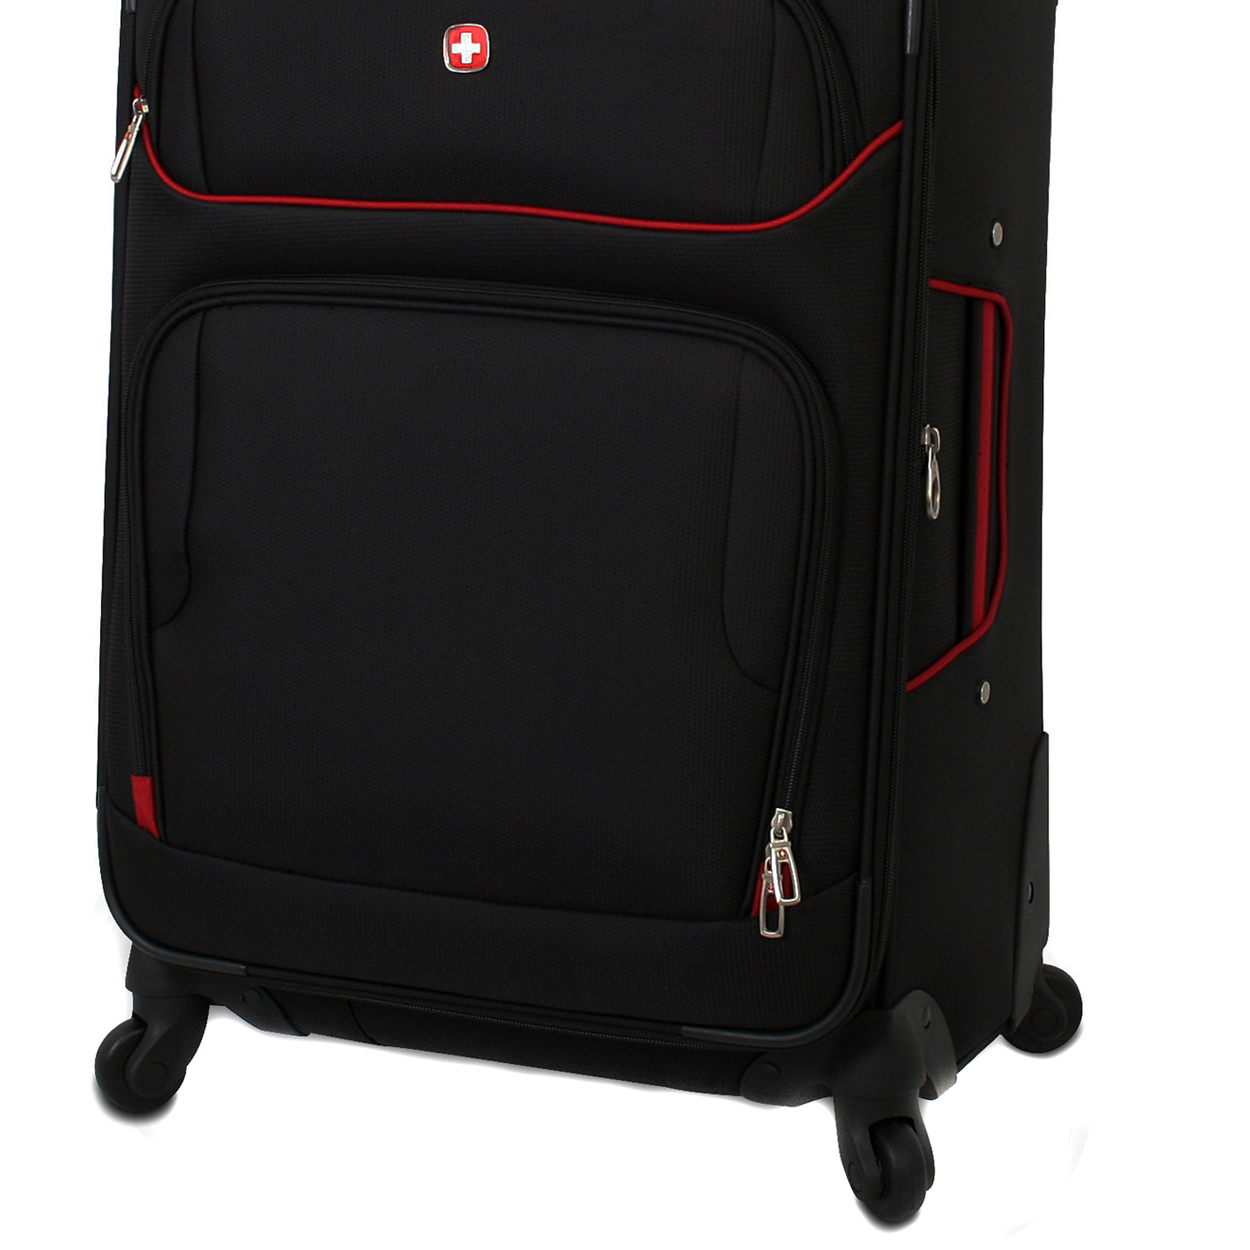 Wenger SwissGear Expandable Lightweight Luggage 24